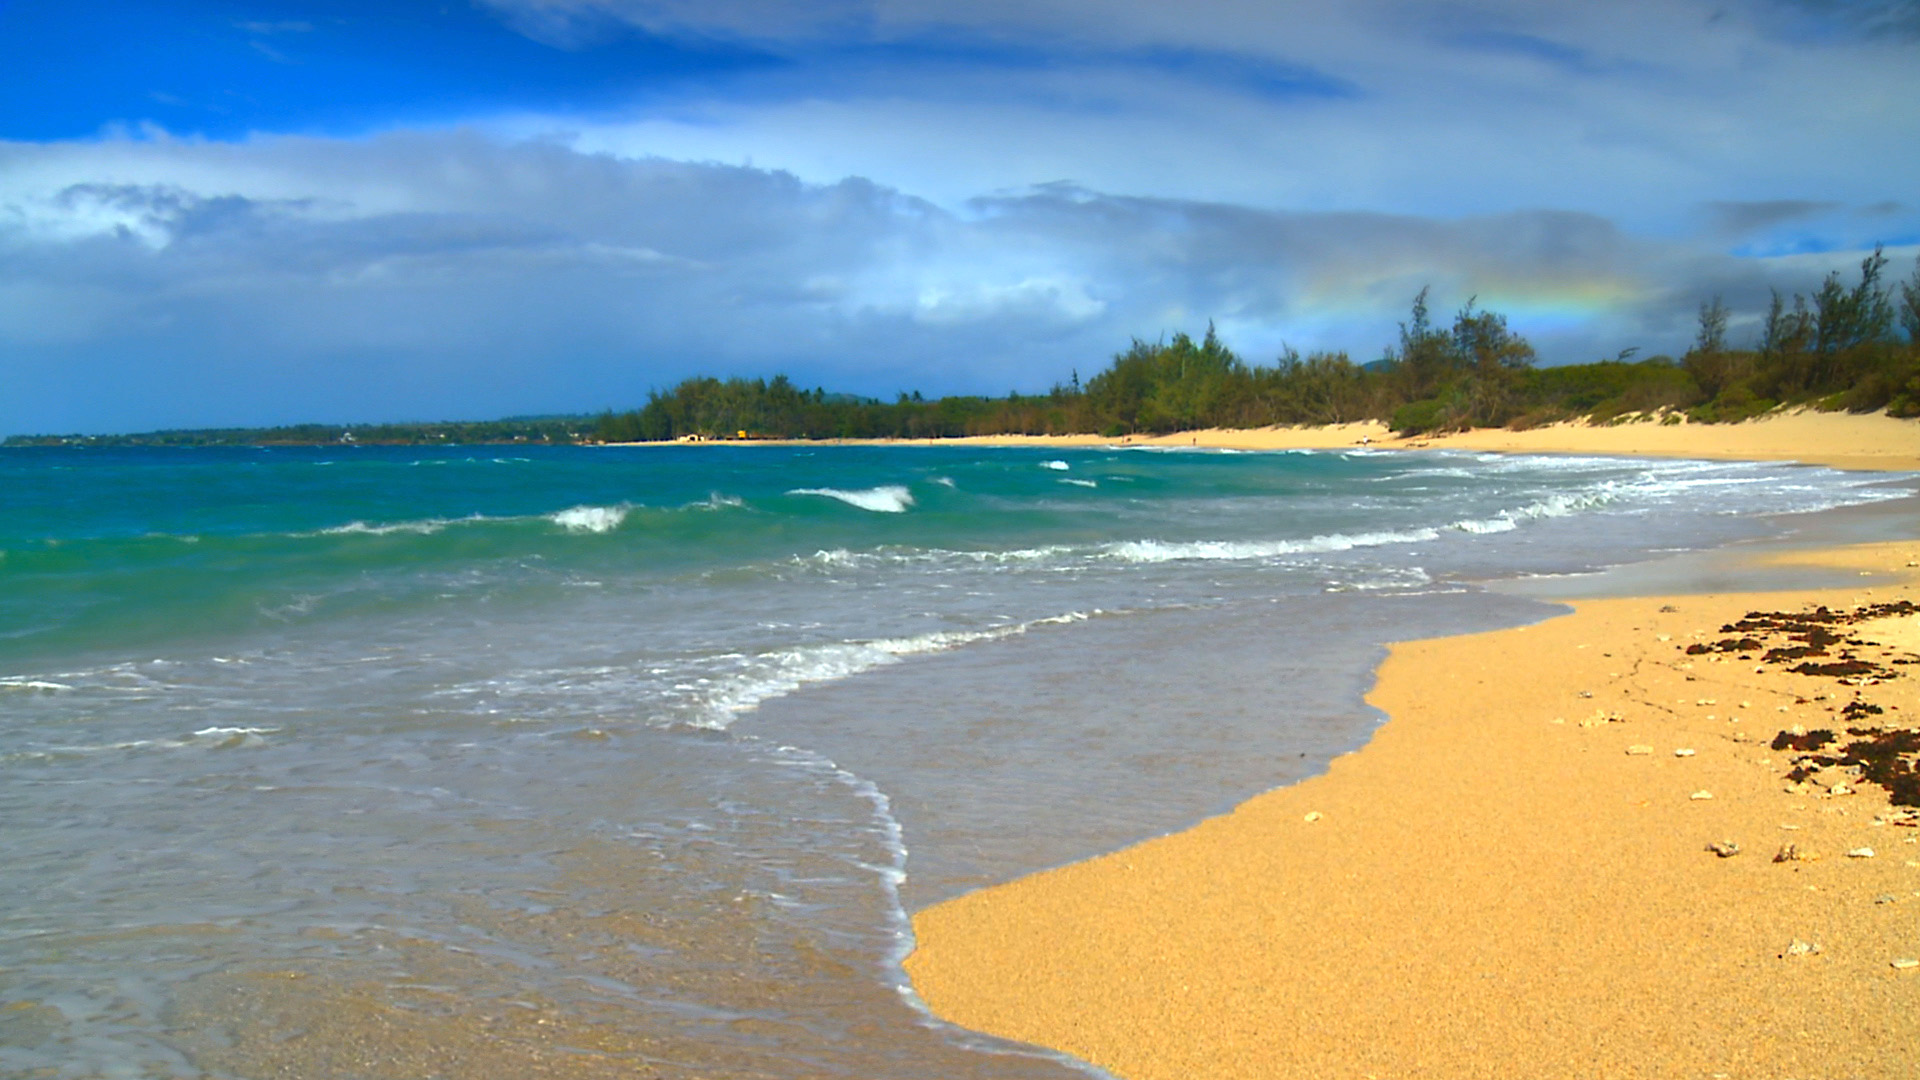 Hawaiian Beaches Wallpaper 1920x1080